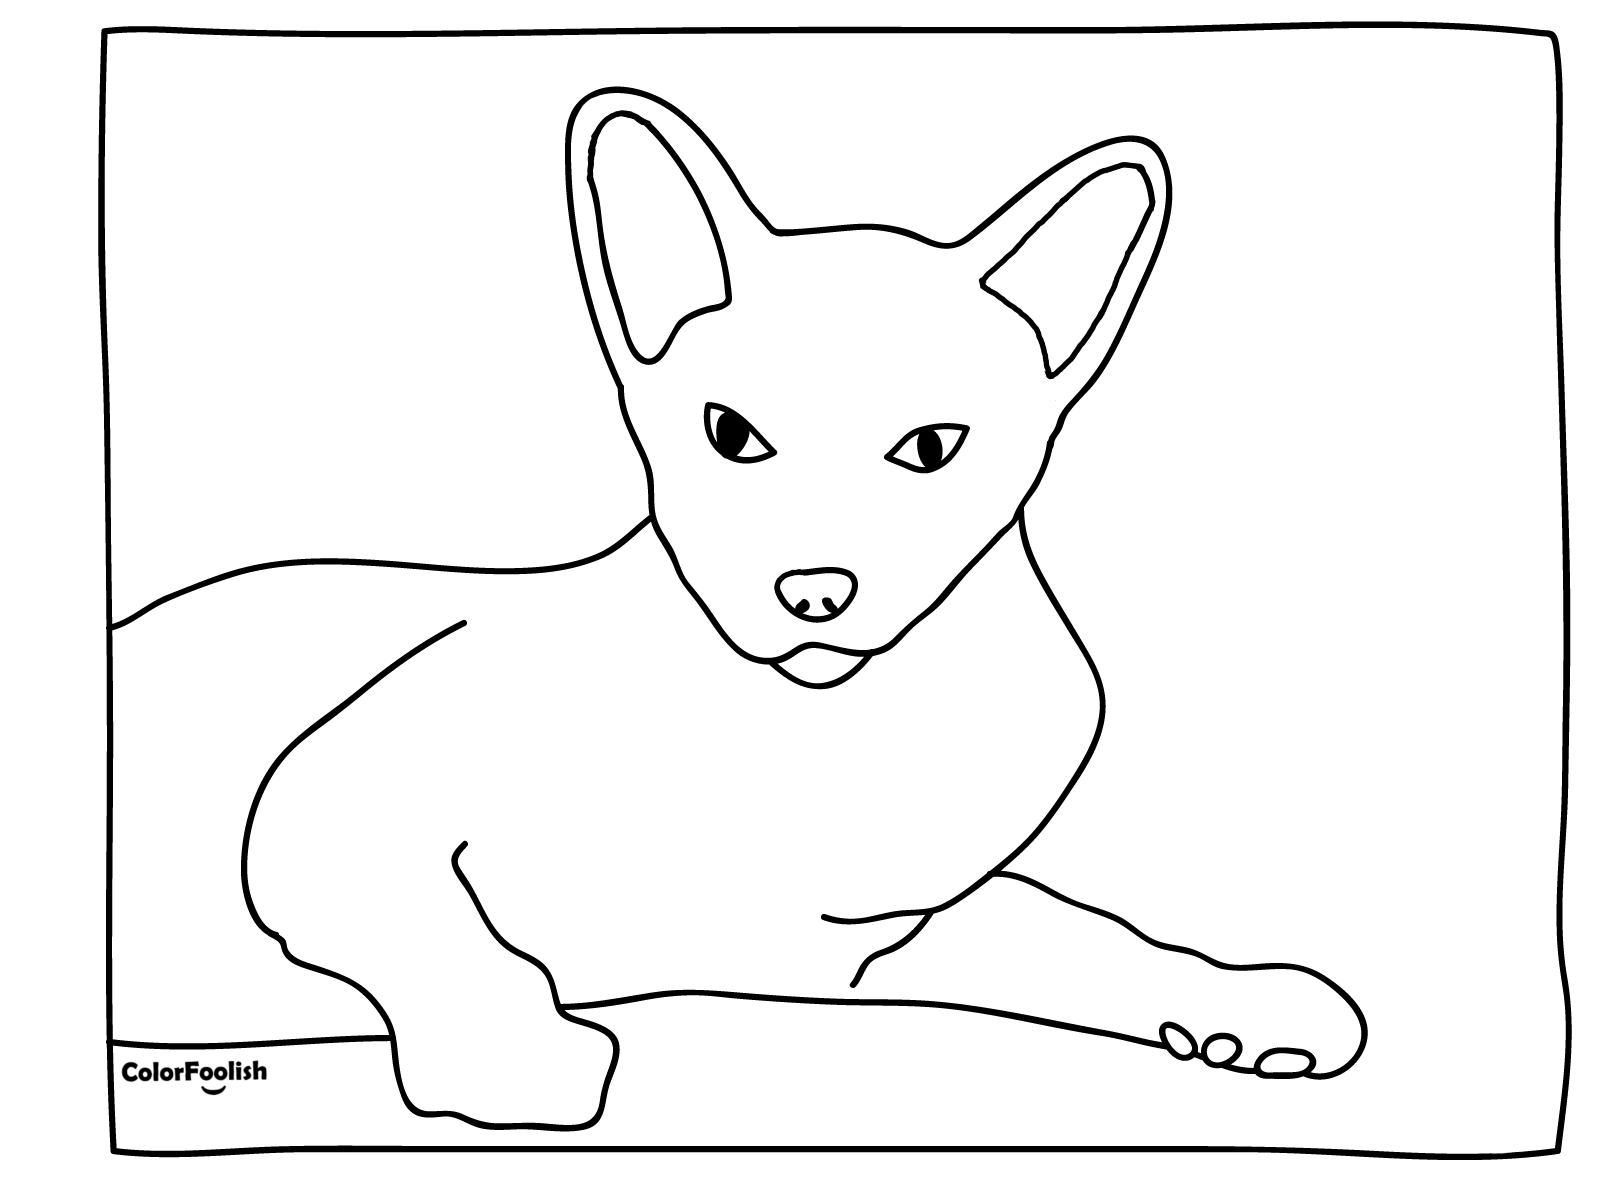 Coloring page of relaxing Siamese cat